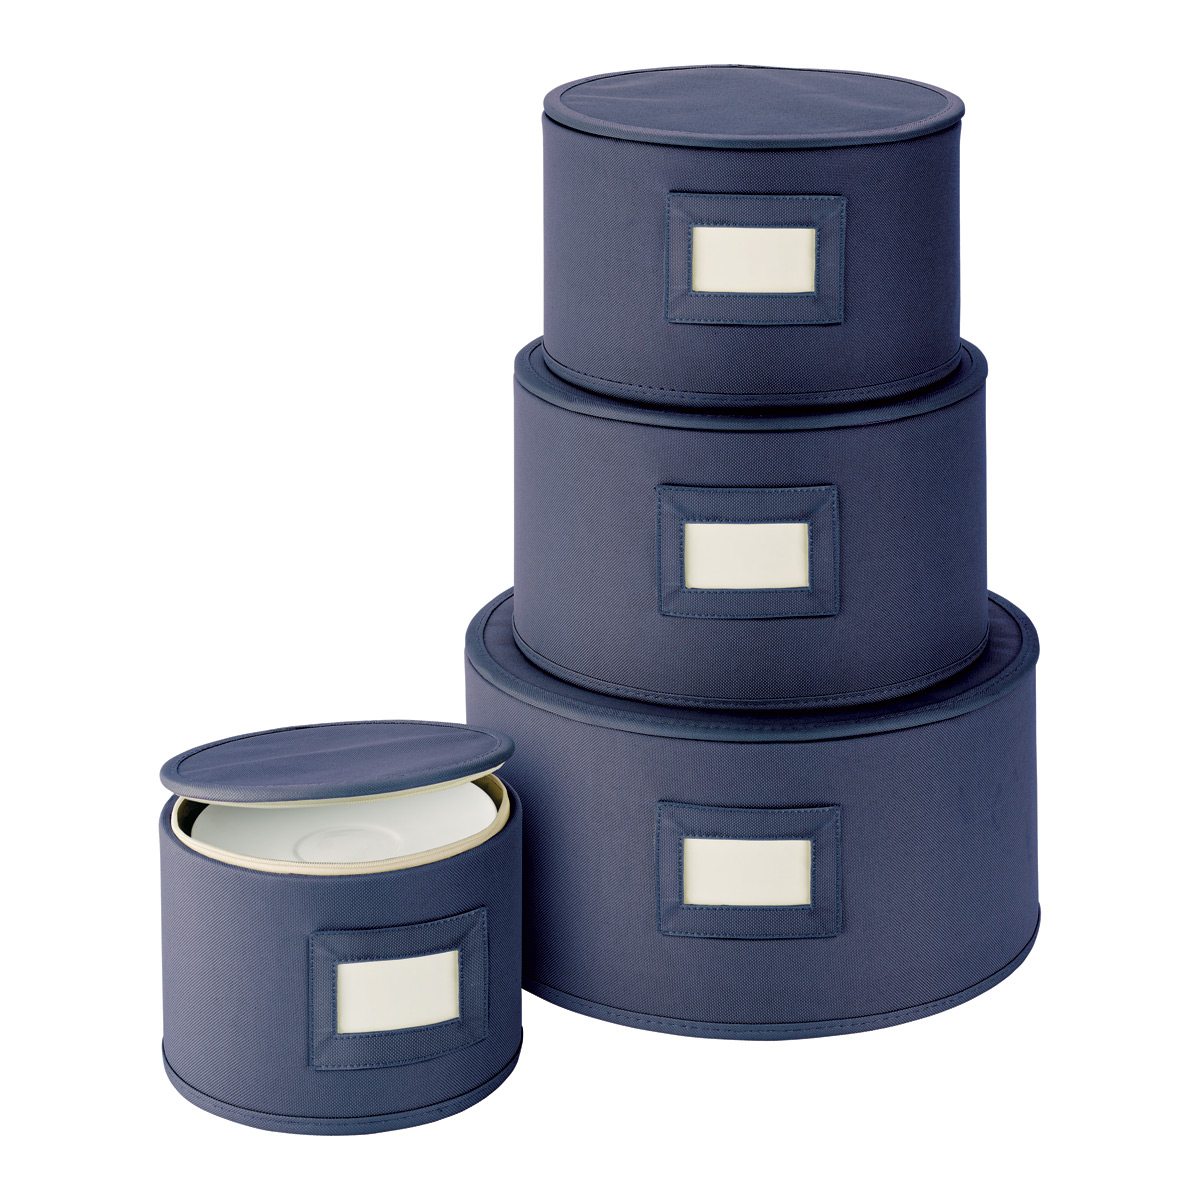 Ordinaire Blue Round Plate Storage Cases